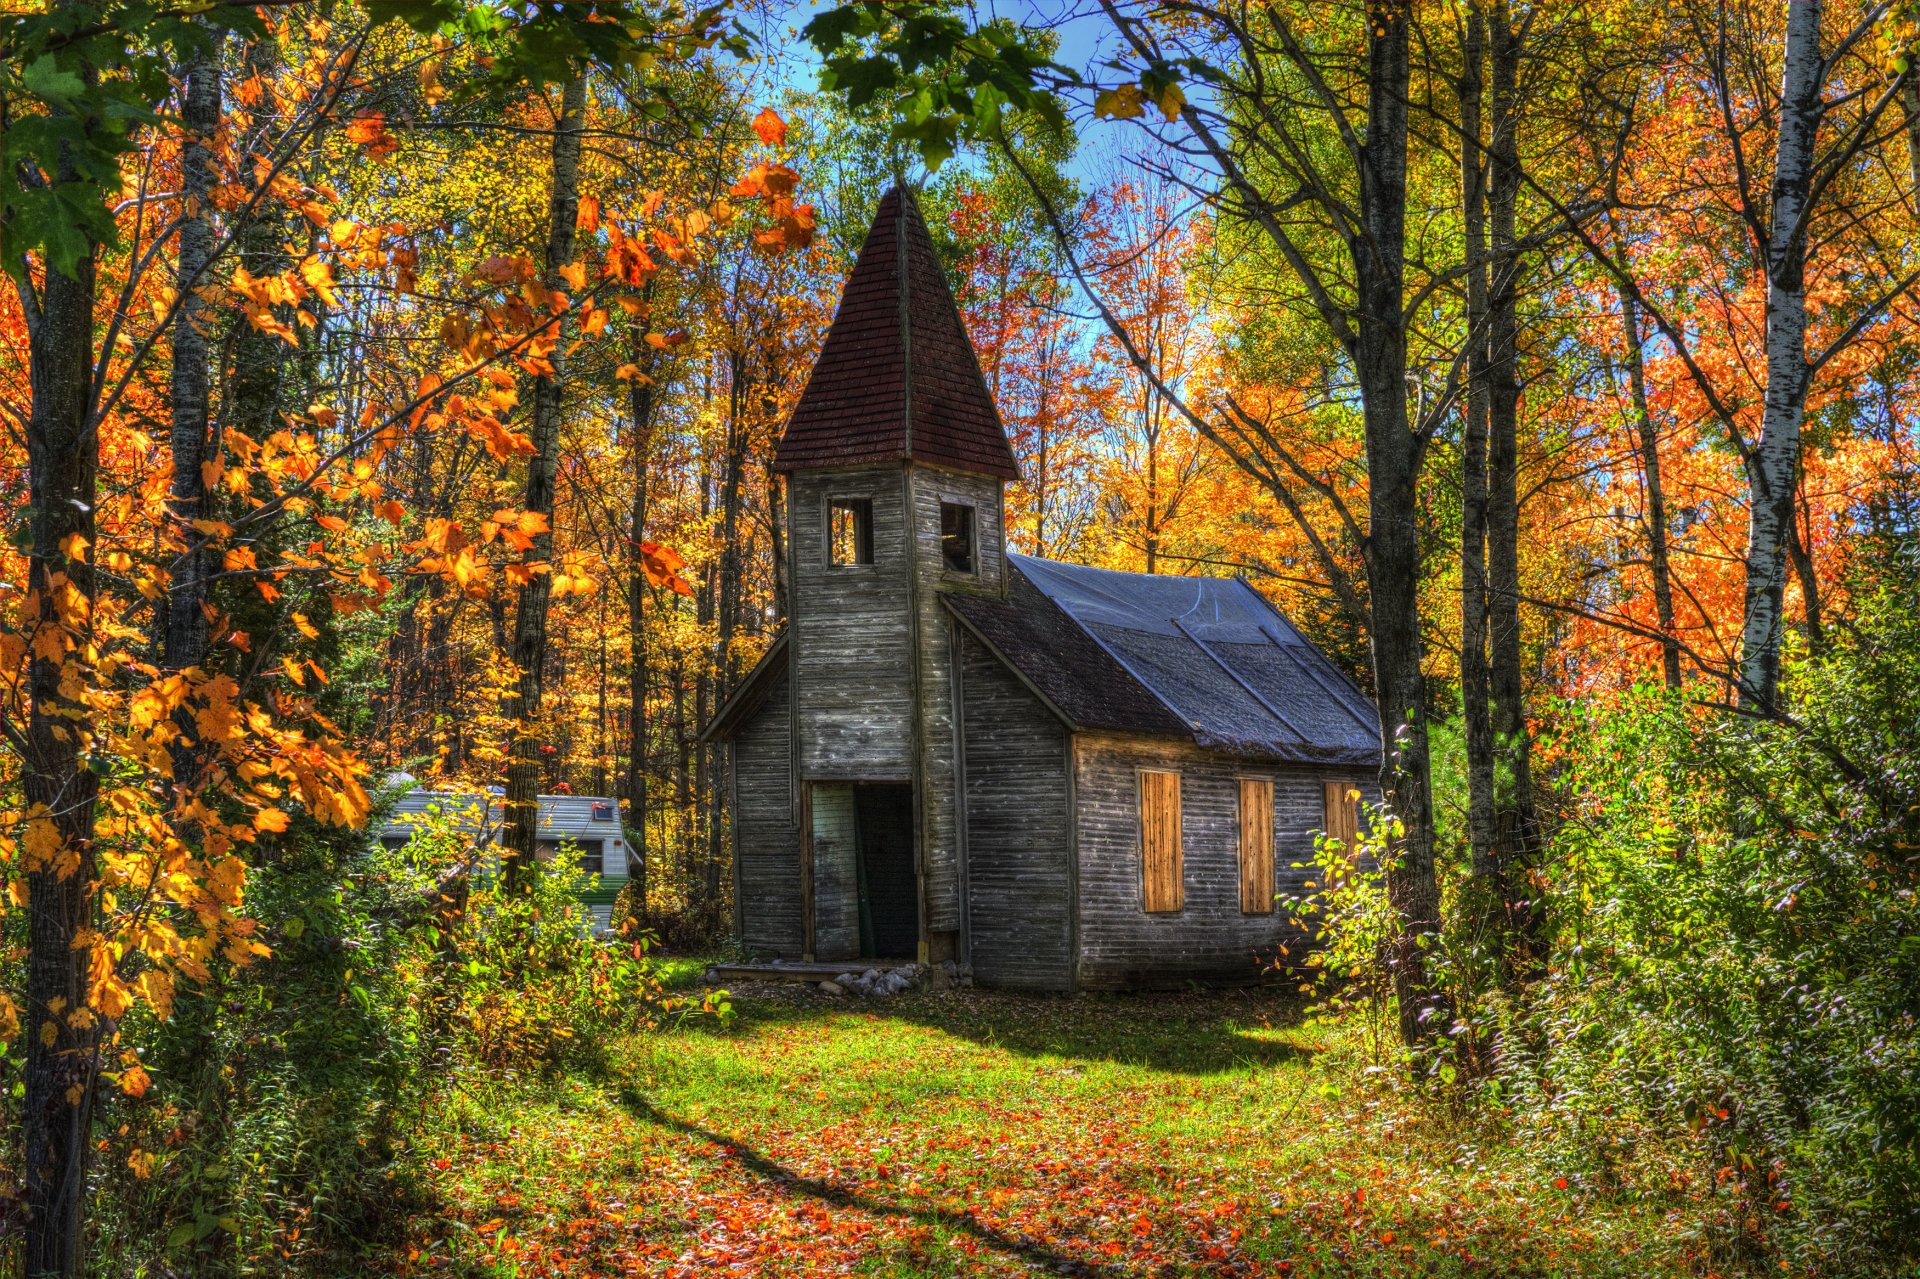 Late Fall Iphone Wallpaper Old Church In Autumn Forest Full Hd Wallpaper And